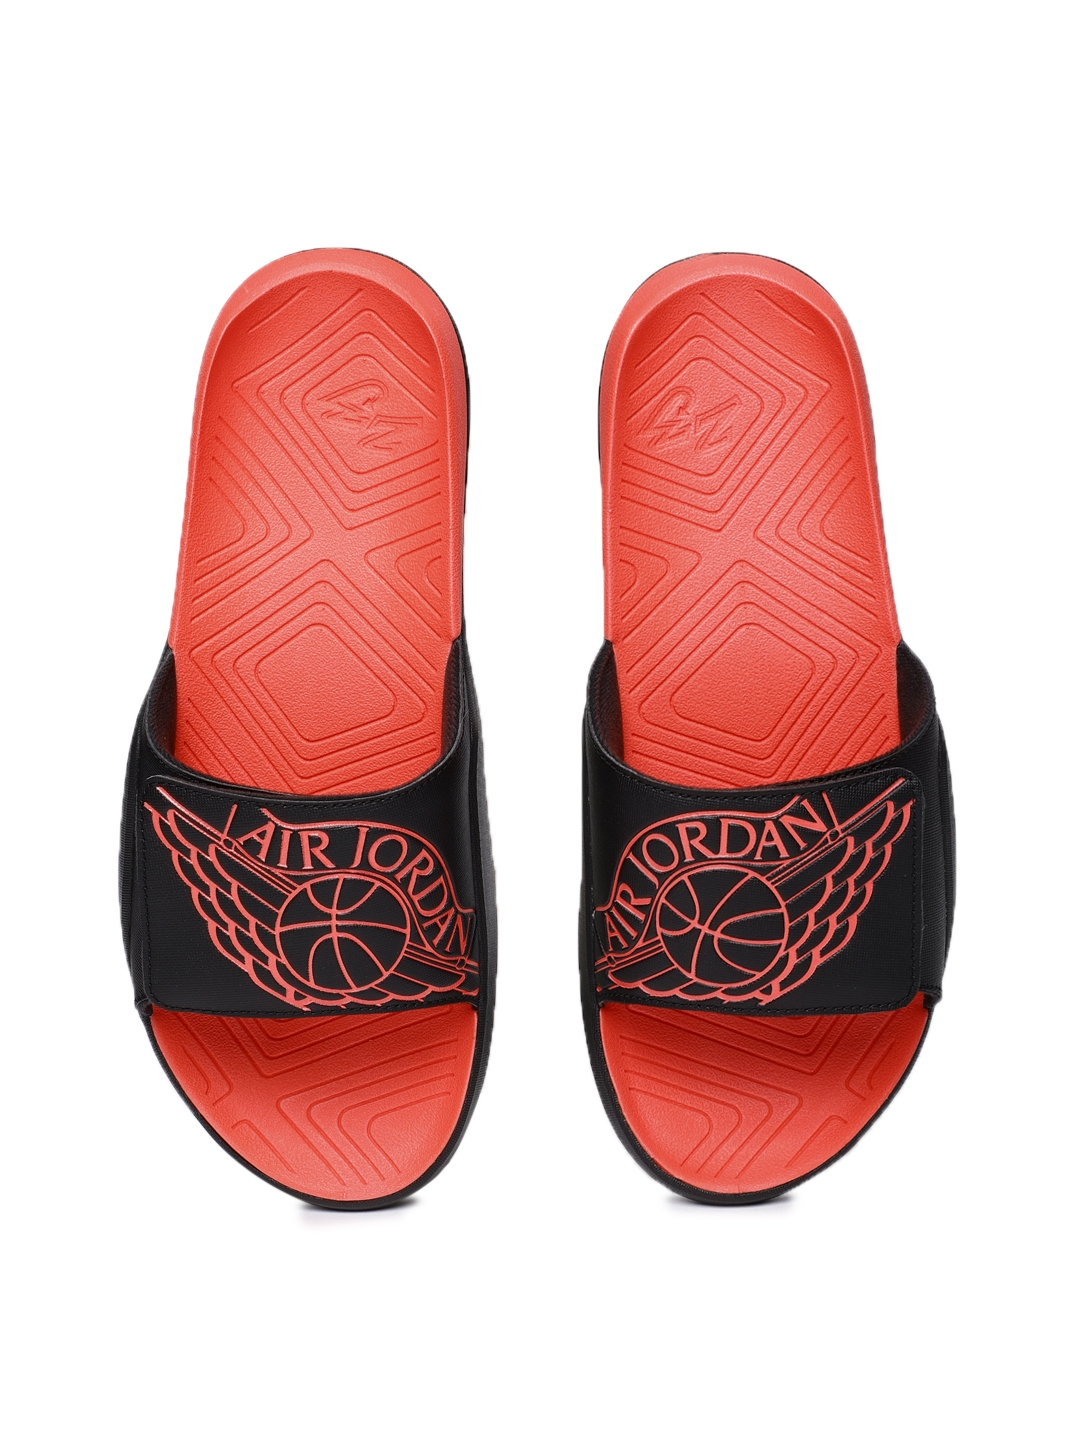 1932b4e0d Buy Nike Men Black   Red Jordan Hydro 7 Printed Sliders - Flip Flops ...